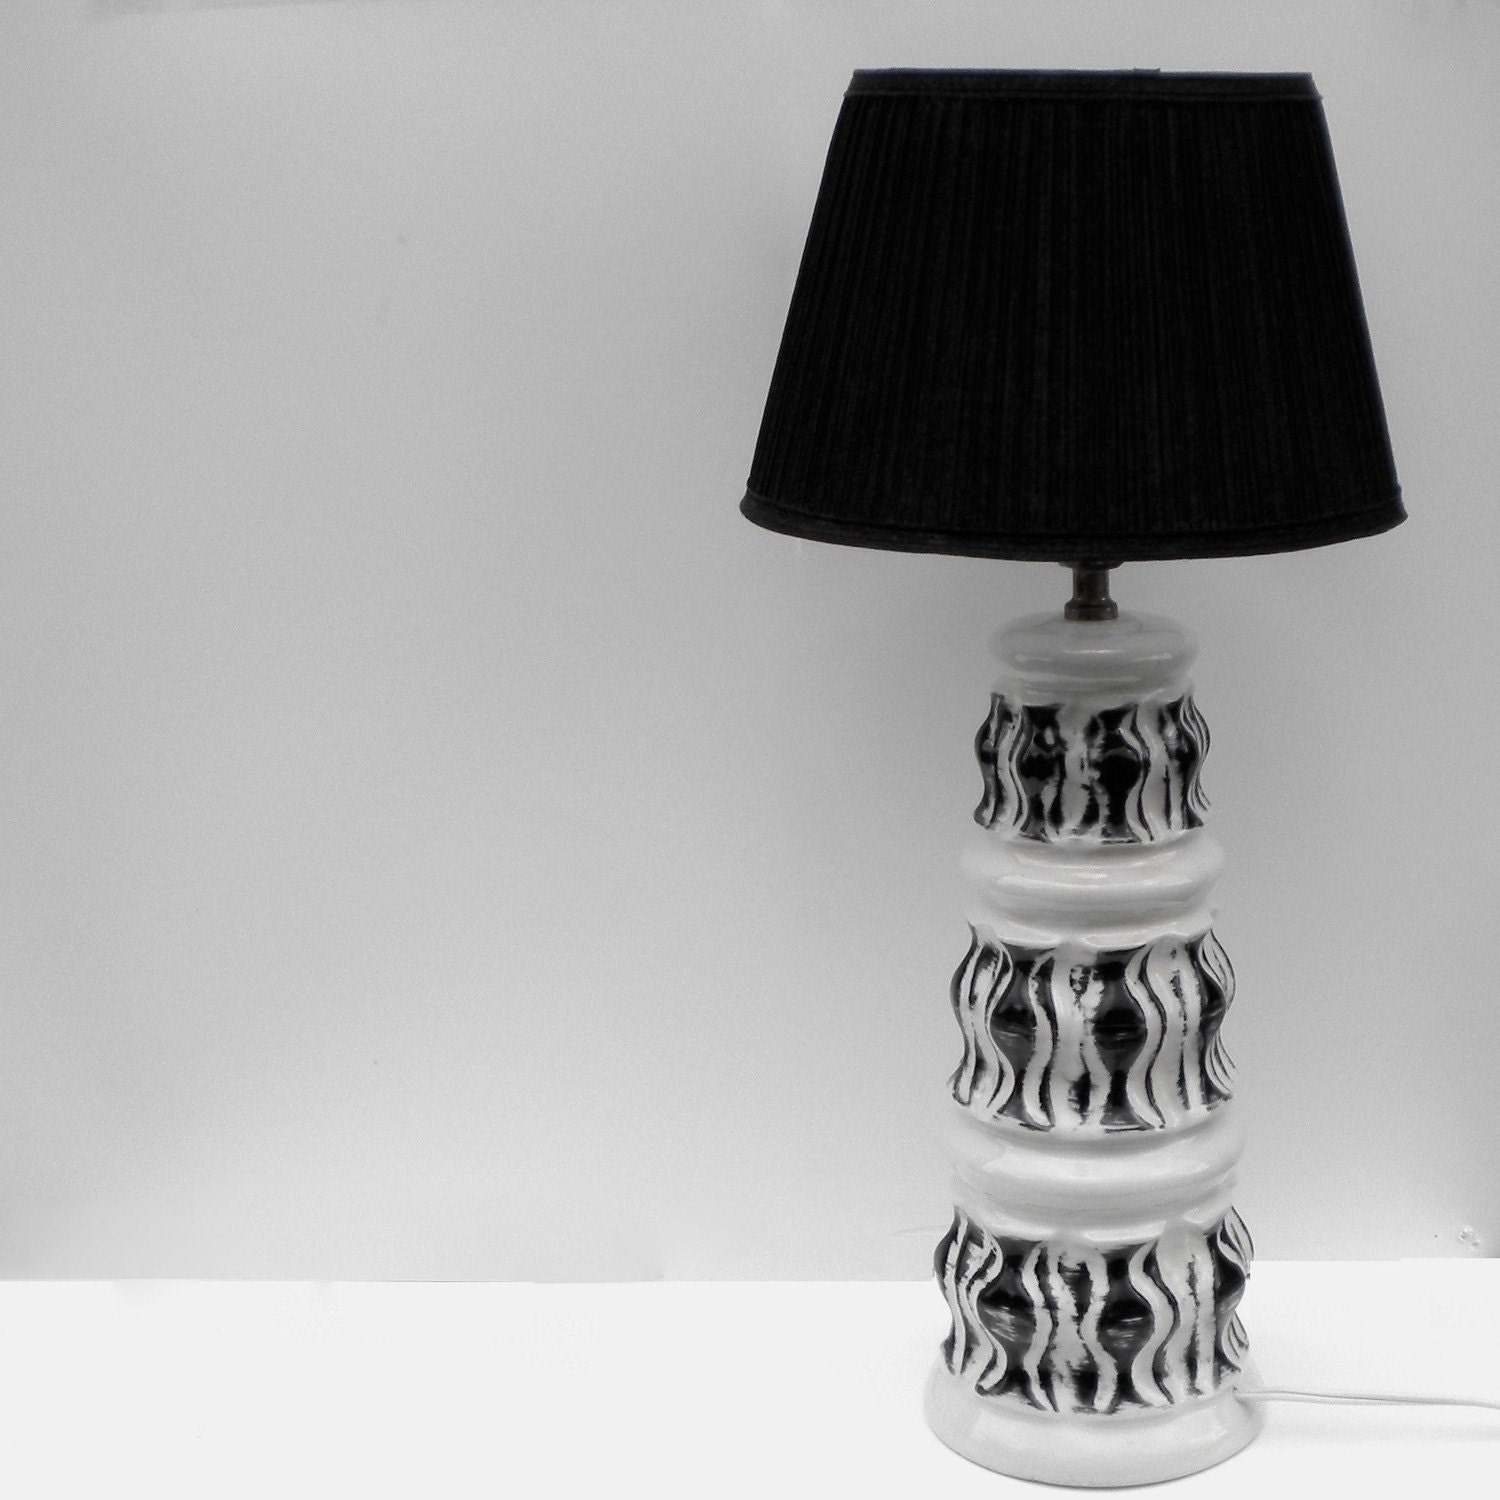 Vintage Black and White Mod Lamp - greenhomeroad